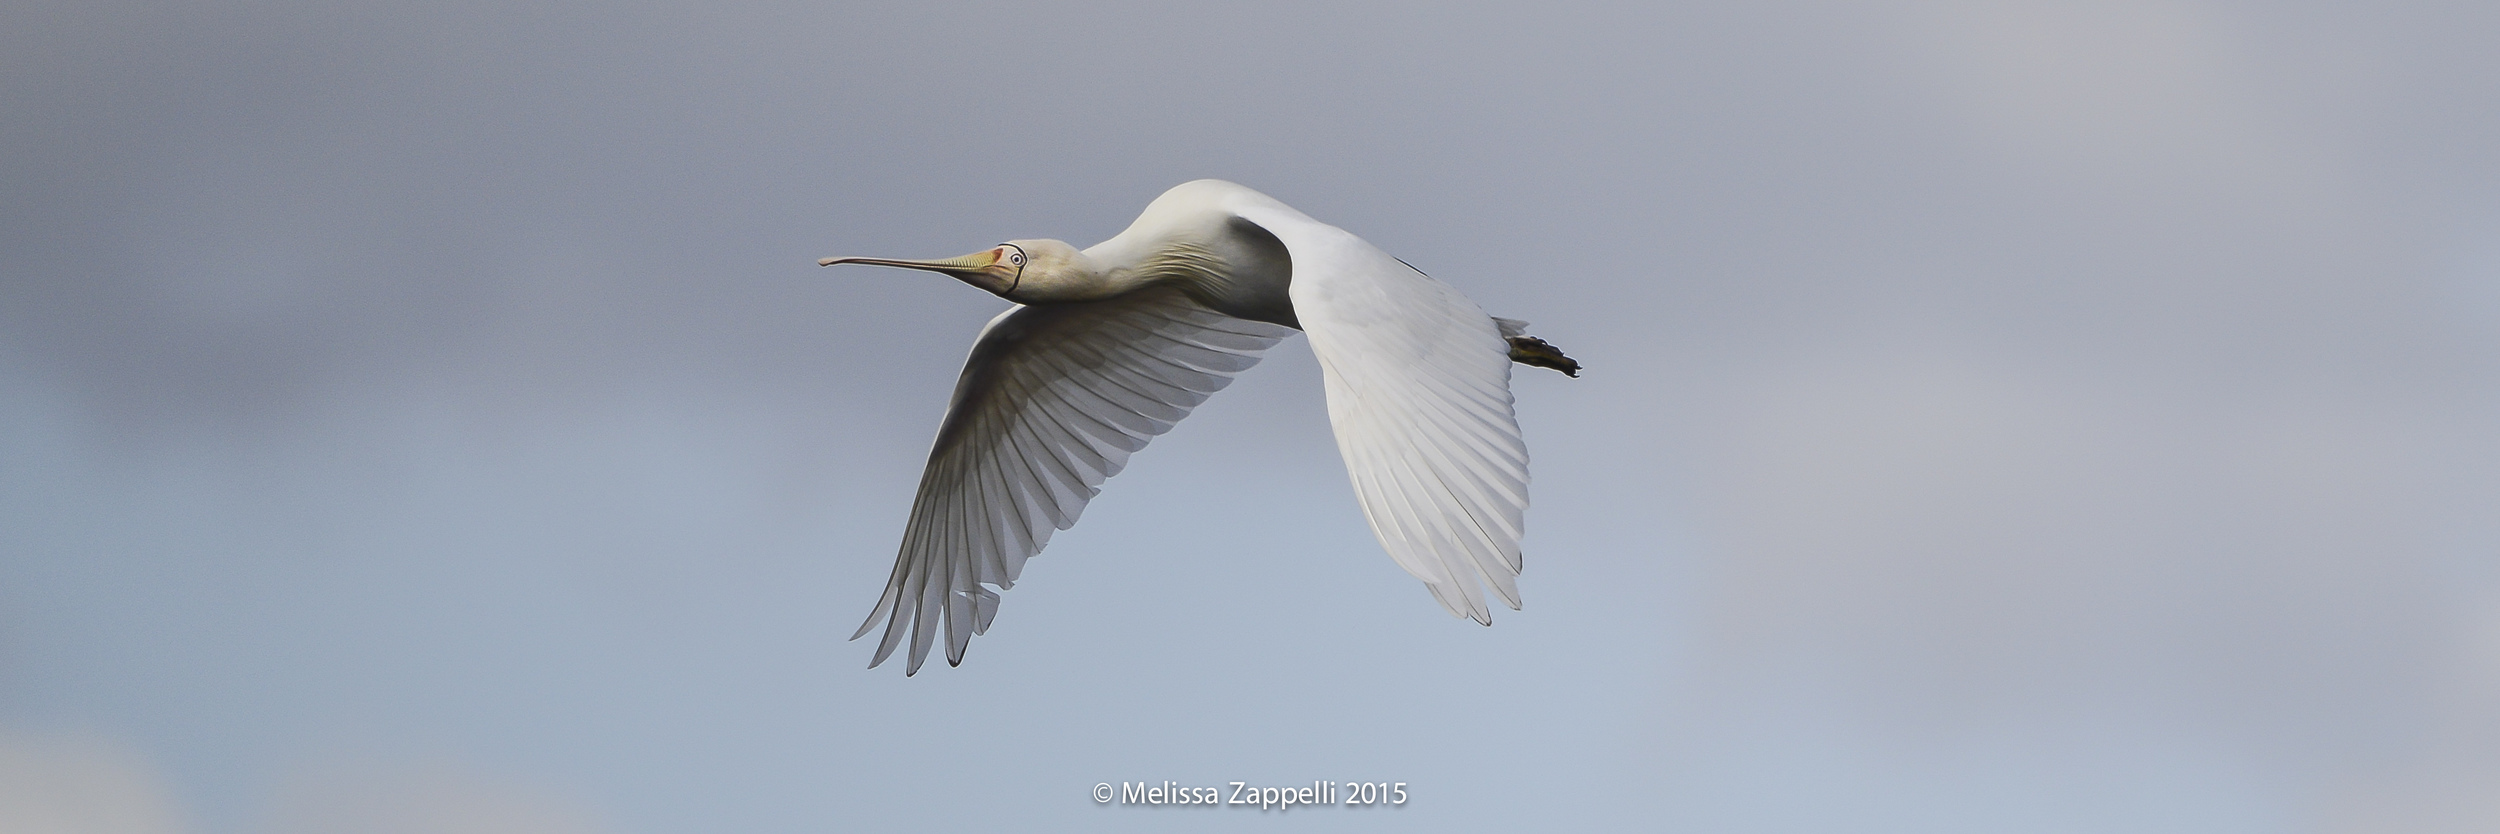 The beautiful Yellow Billed Spoonbill which started my obsession with bird photography. This ismy very first flight image captured unexpectedly at North Lake on the 19th of August 2014.